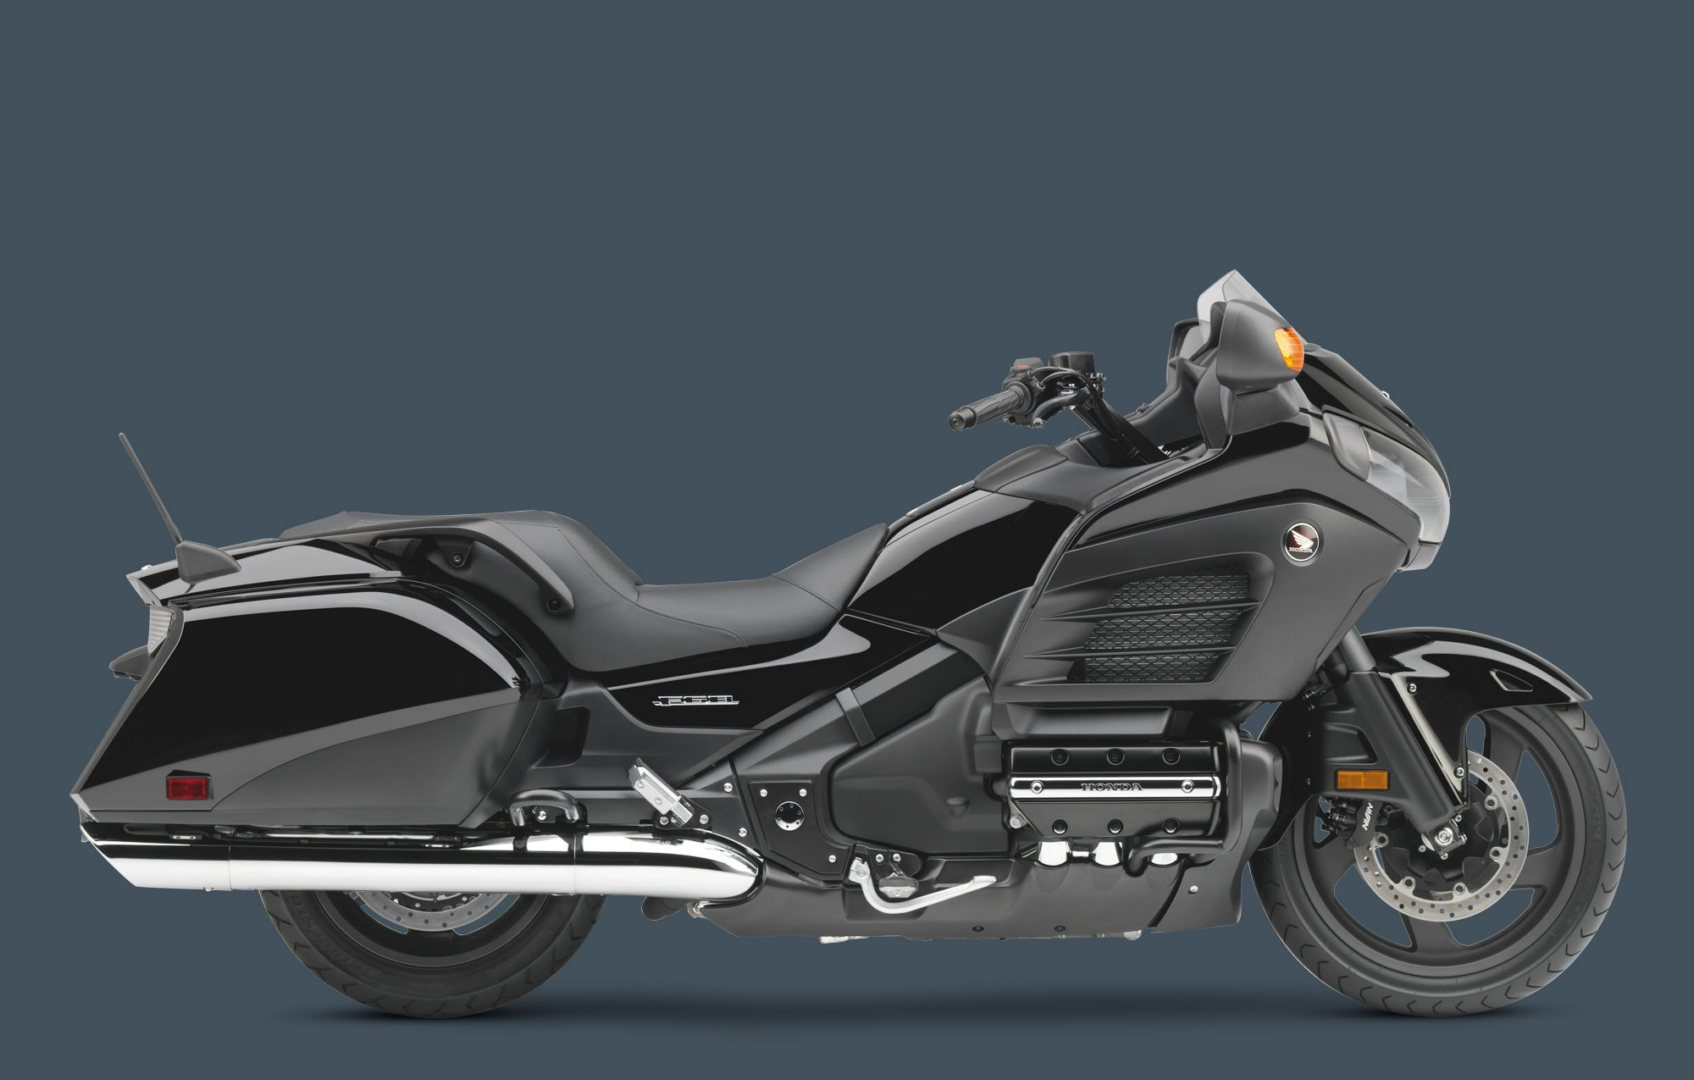 2013 Honda Brings Changes in the Flagship Gold Wing F6B - autoevolution